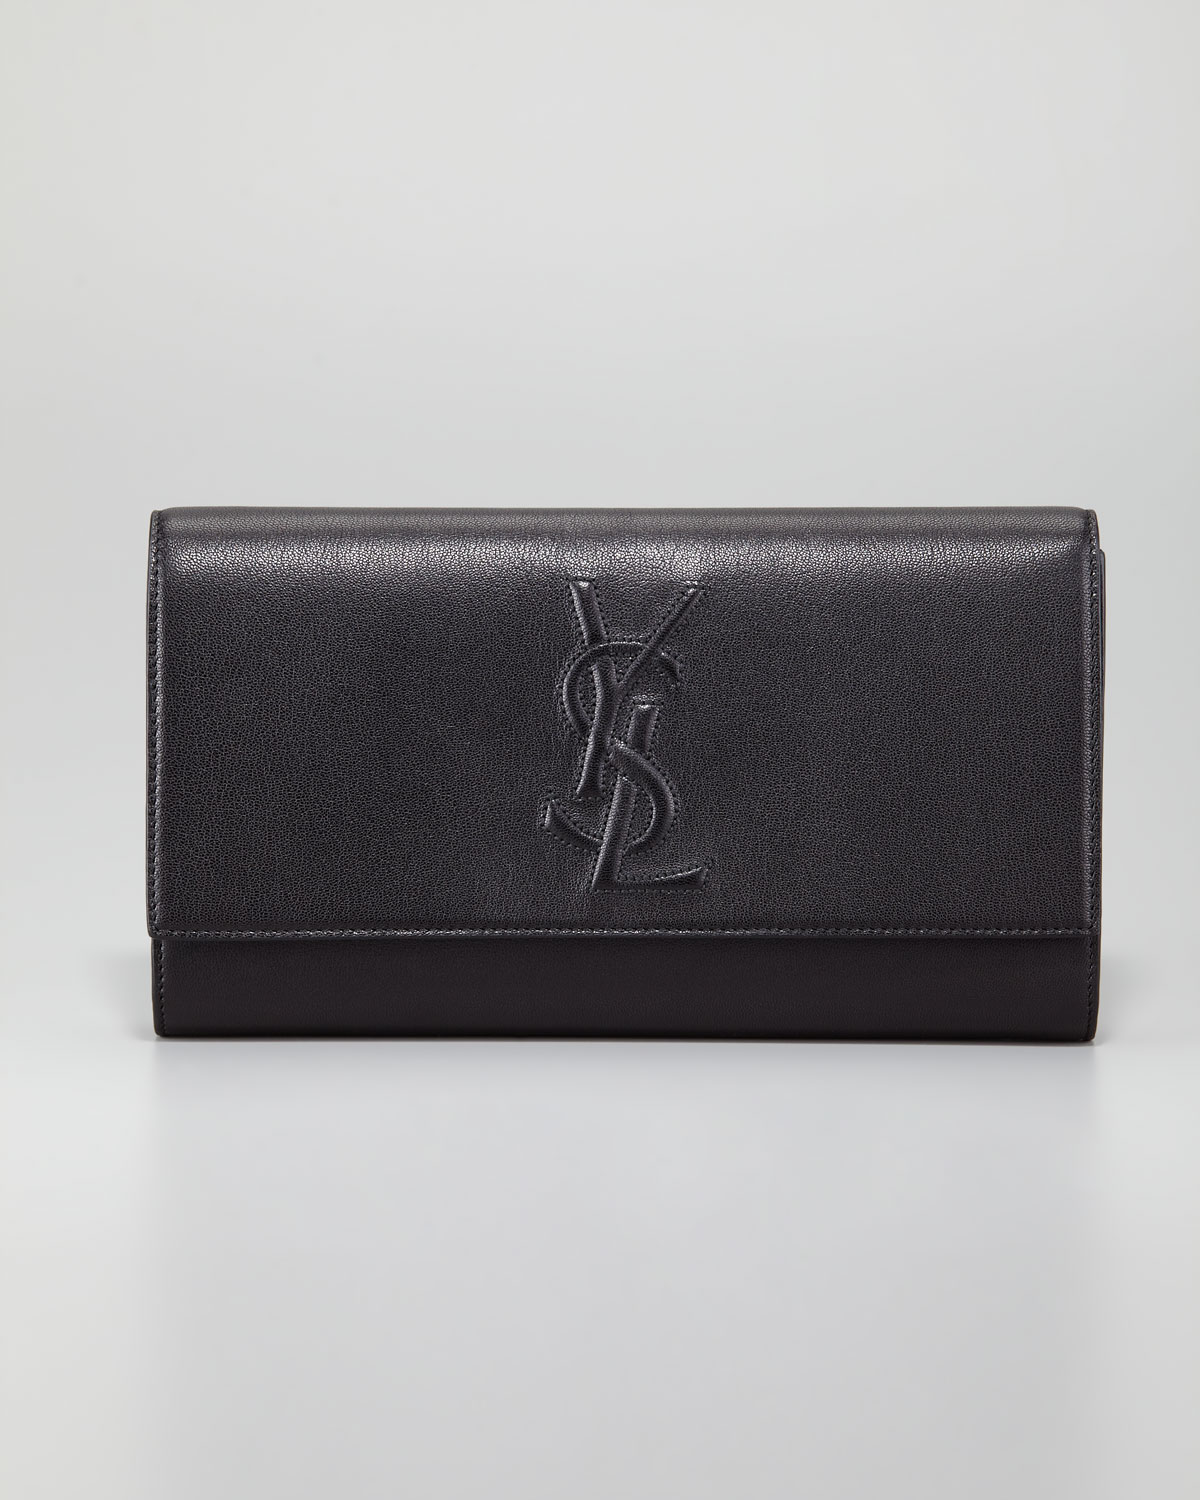 3501cc71a Copy Yves Saint Laurent Clutch Bag | Stanford Center for Opportunity ...